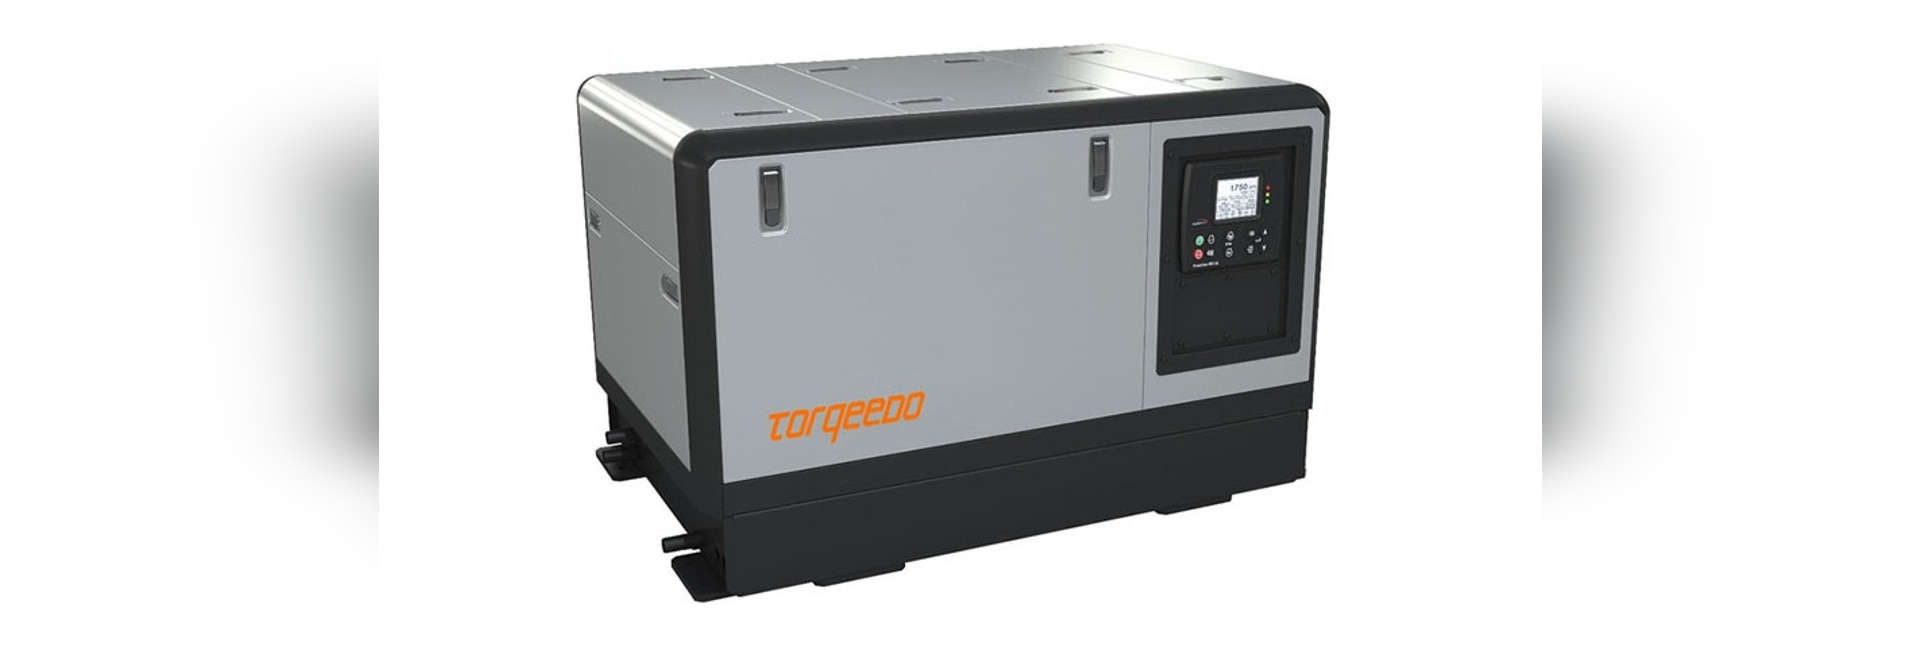 Torqeedo and WhisperPower cooperate on new generator for the Deep Blue family